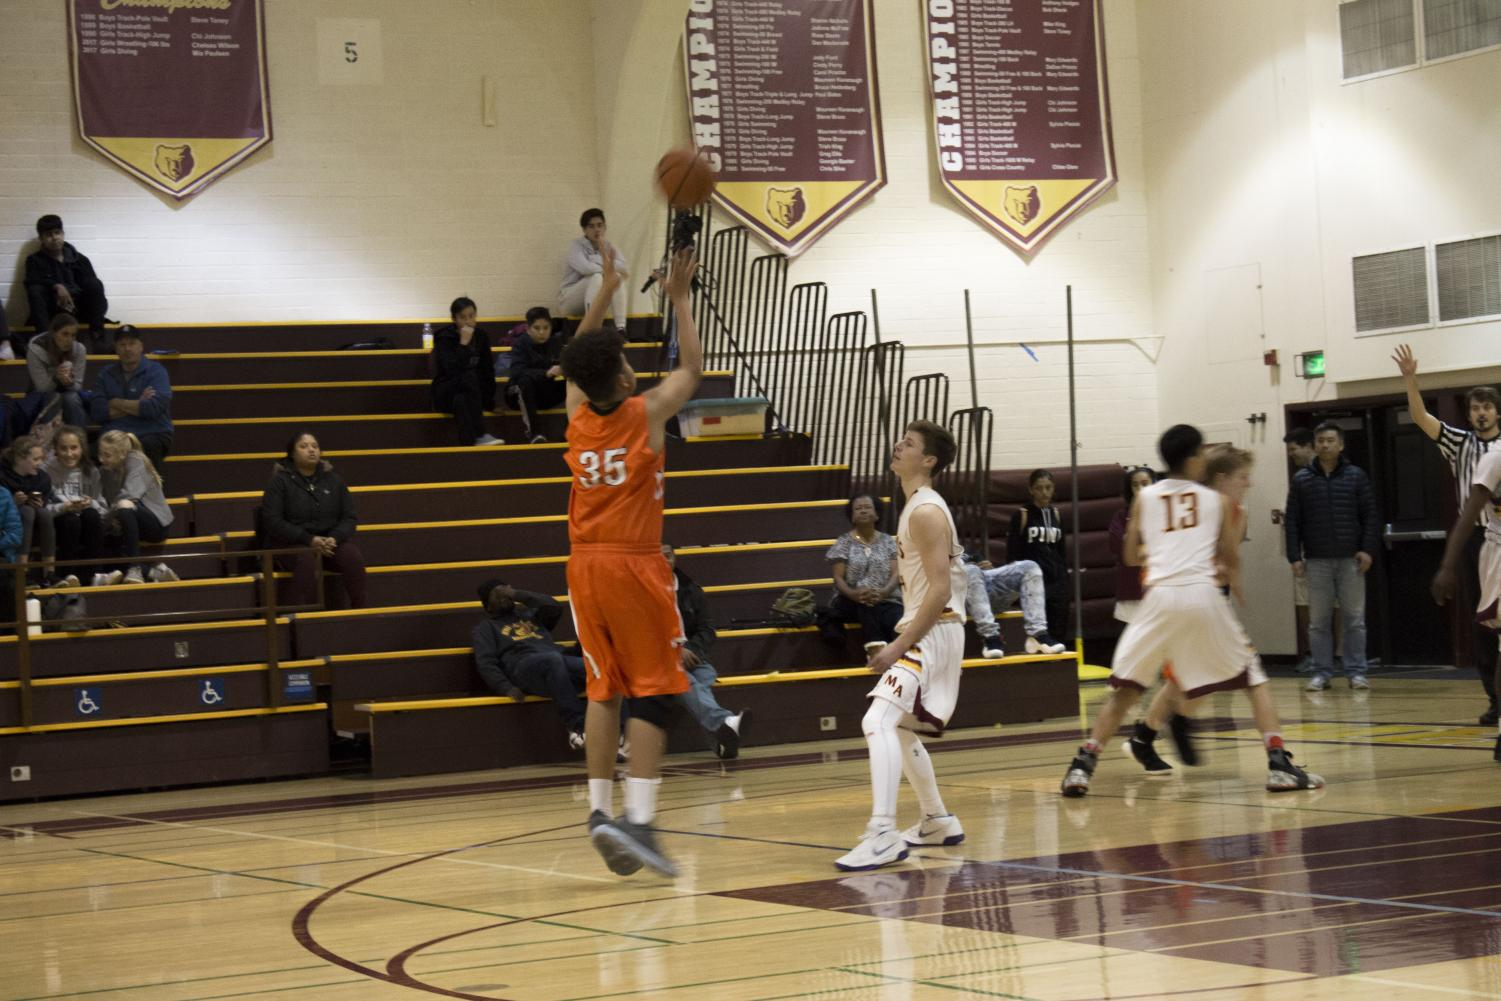 De'Andre Brown, Woodside Center, jumping to catch the baseline pass.